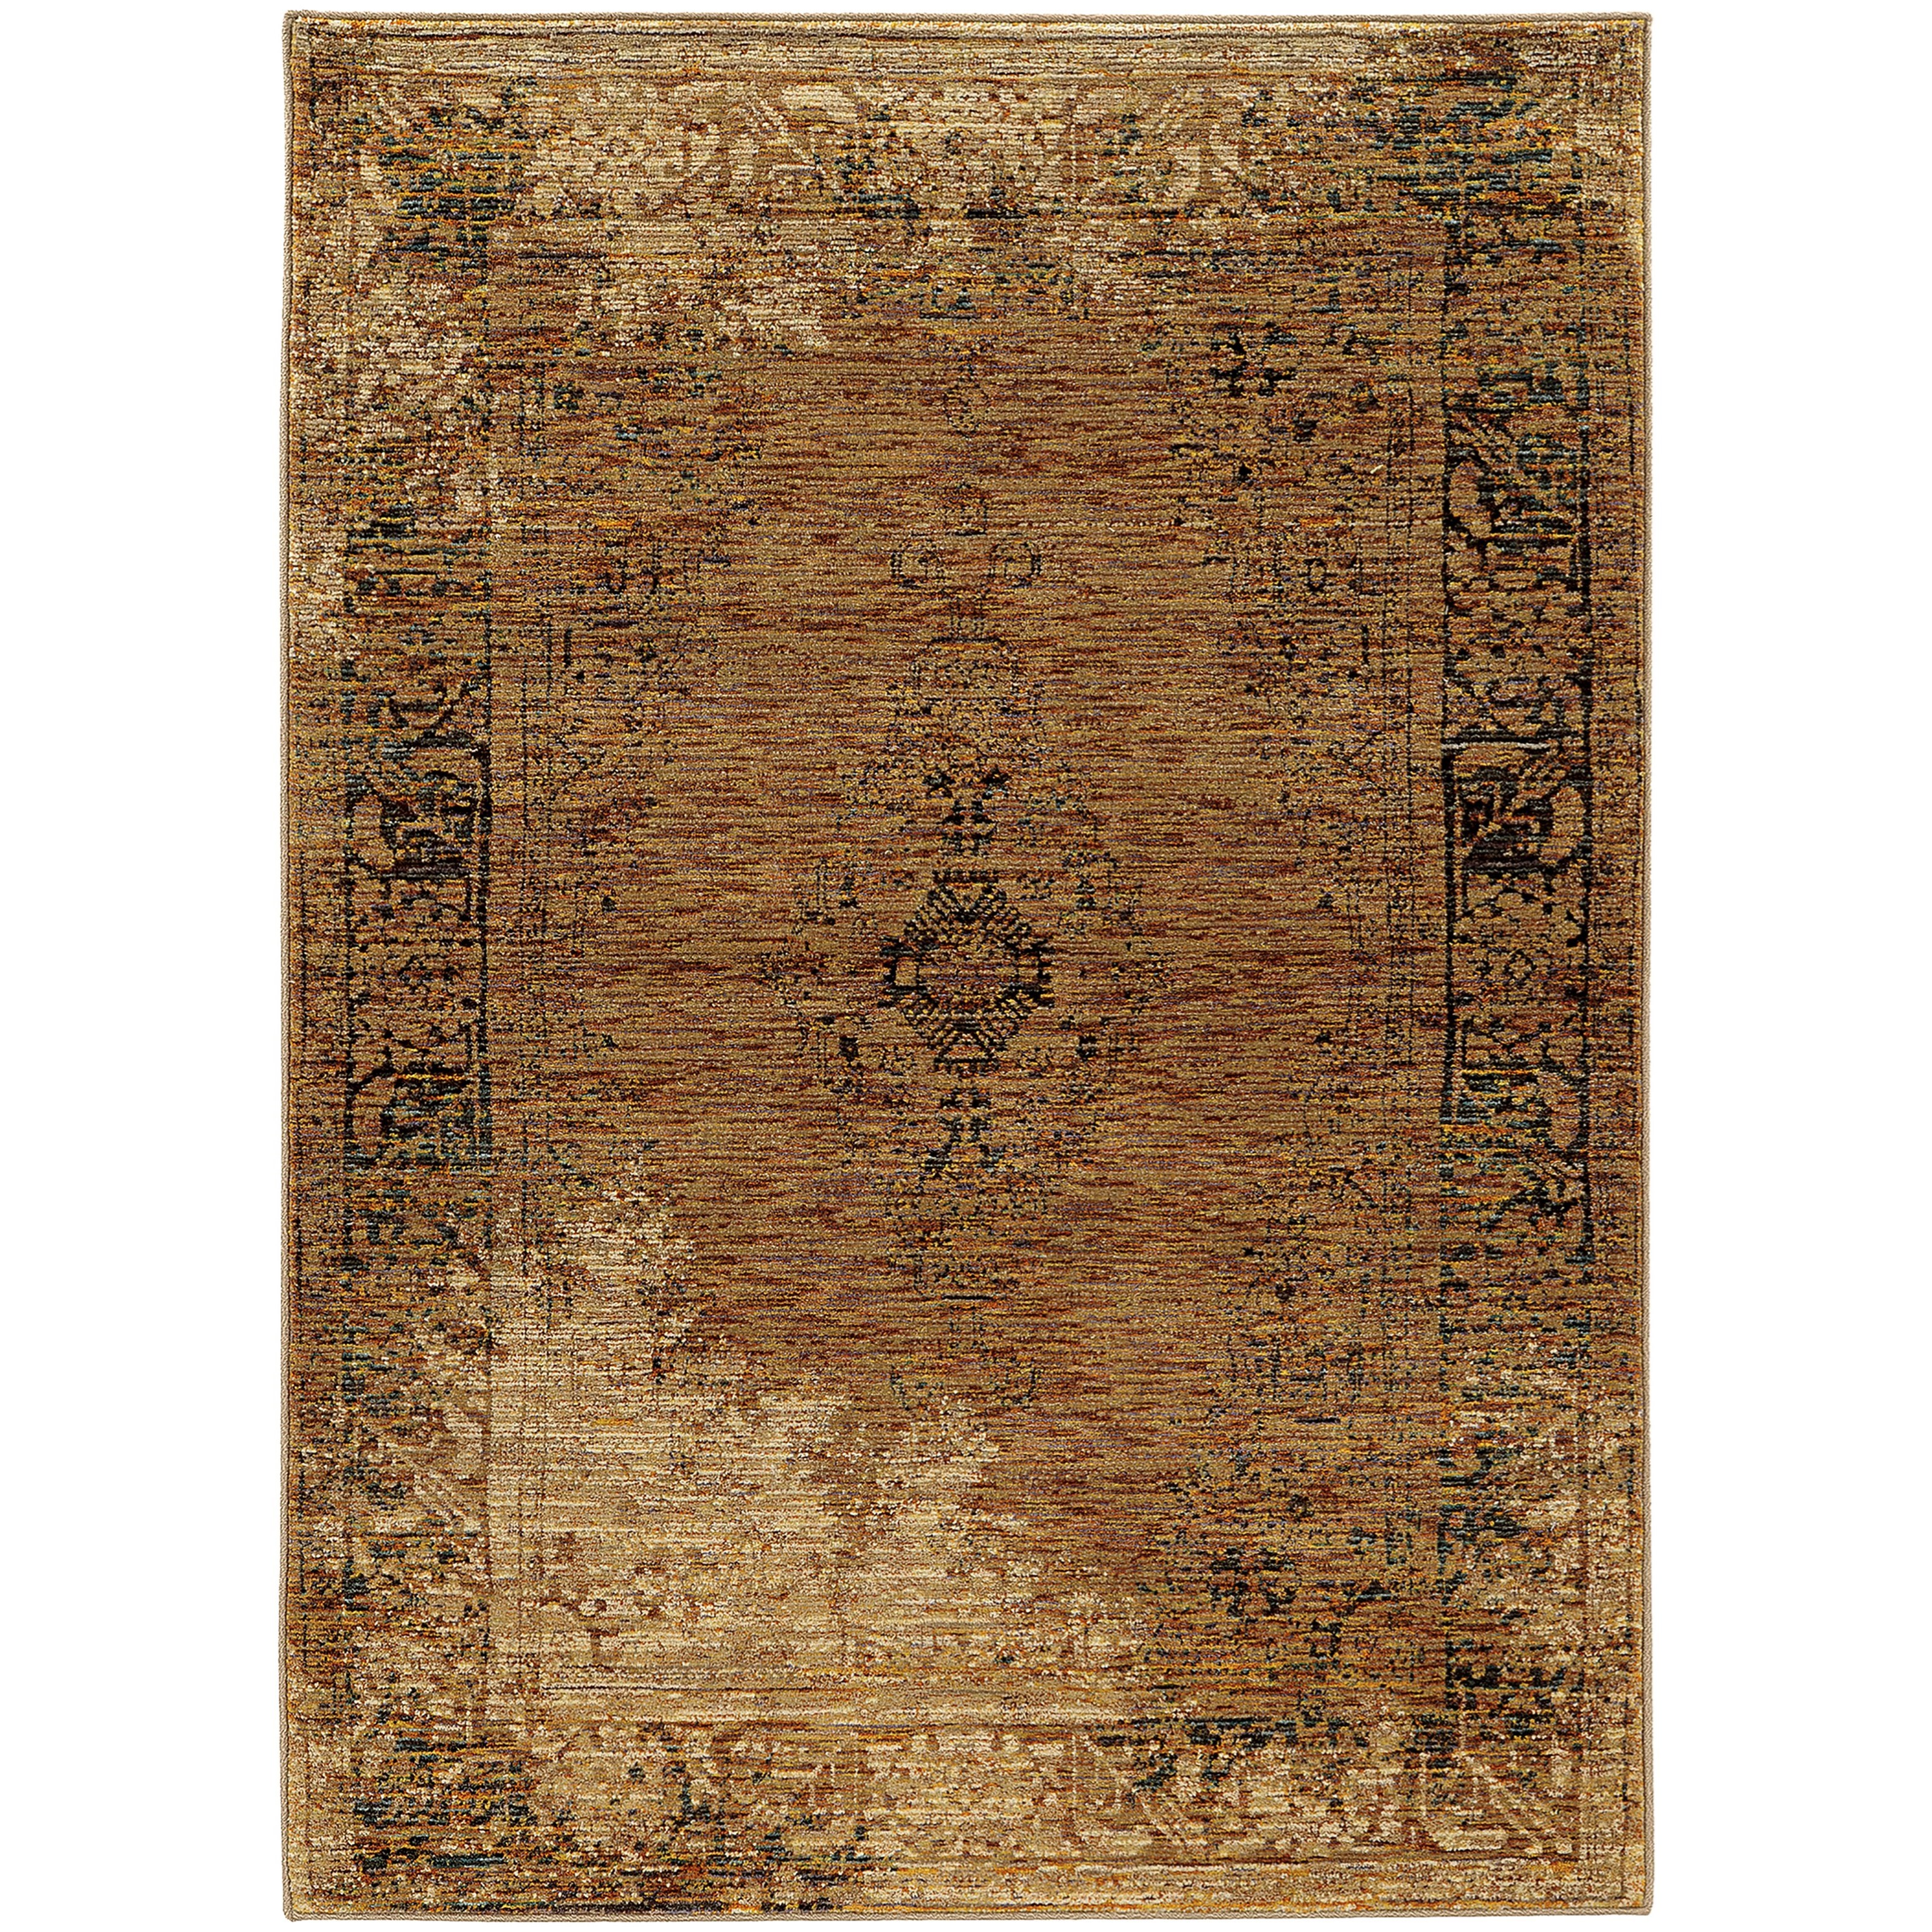 "Andorra 1'10"" X  3' 2"" Casual Gold/ Brown Rectangle  by Oriental Weavers at Steger's Furniture"